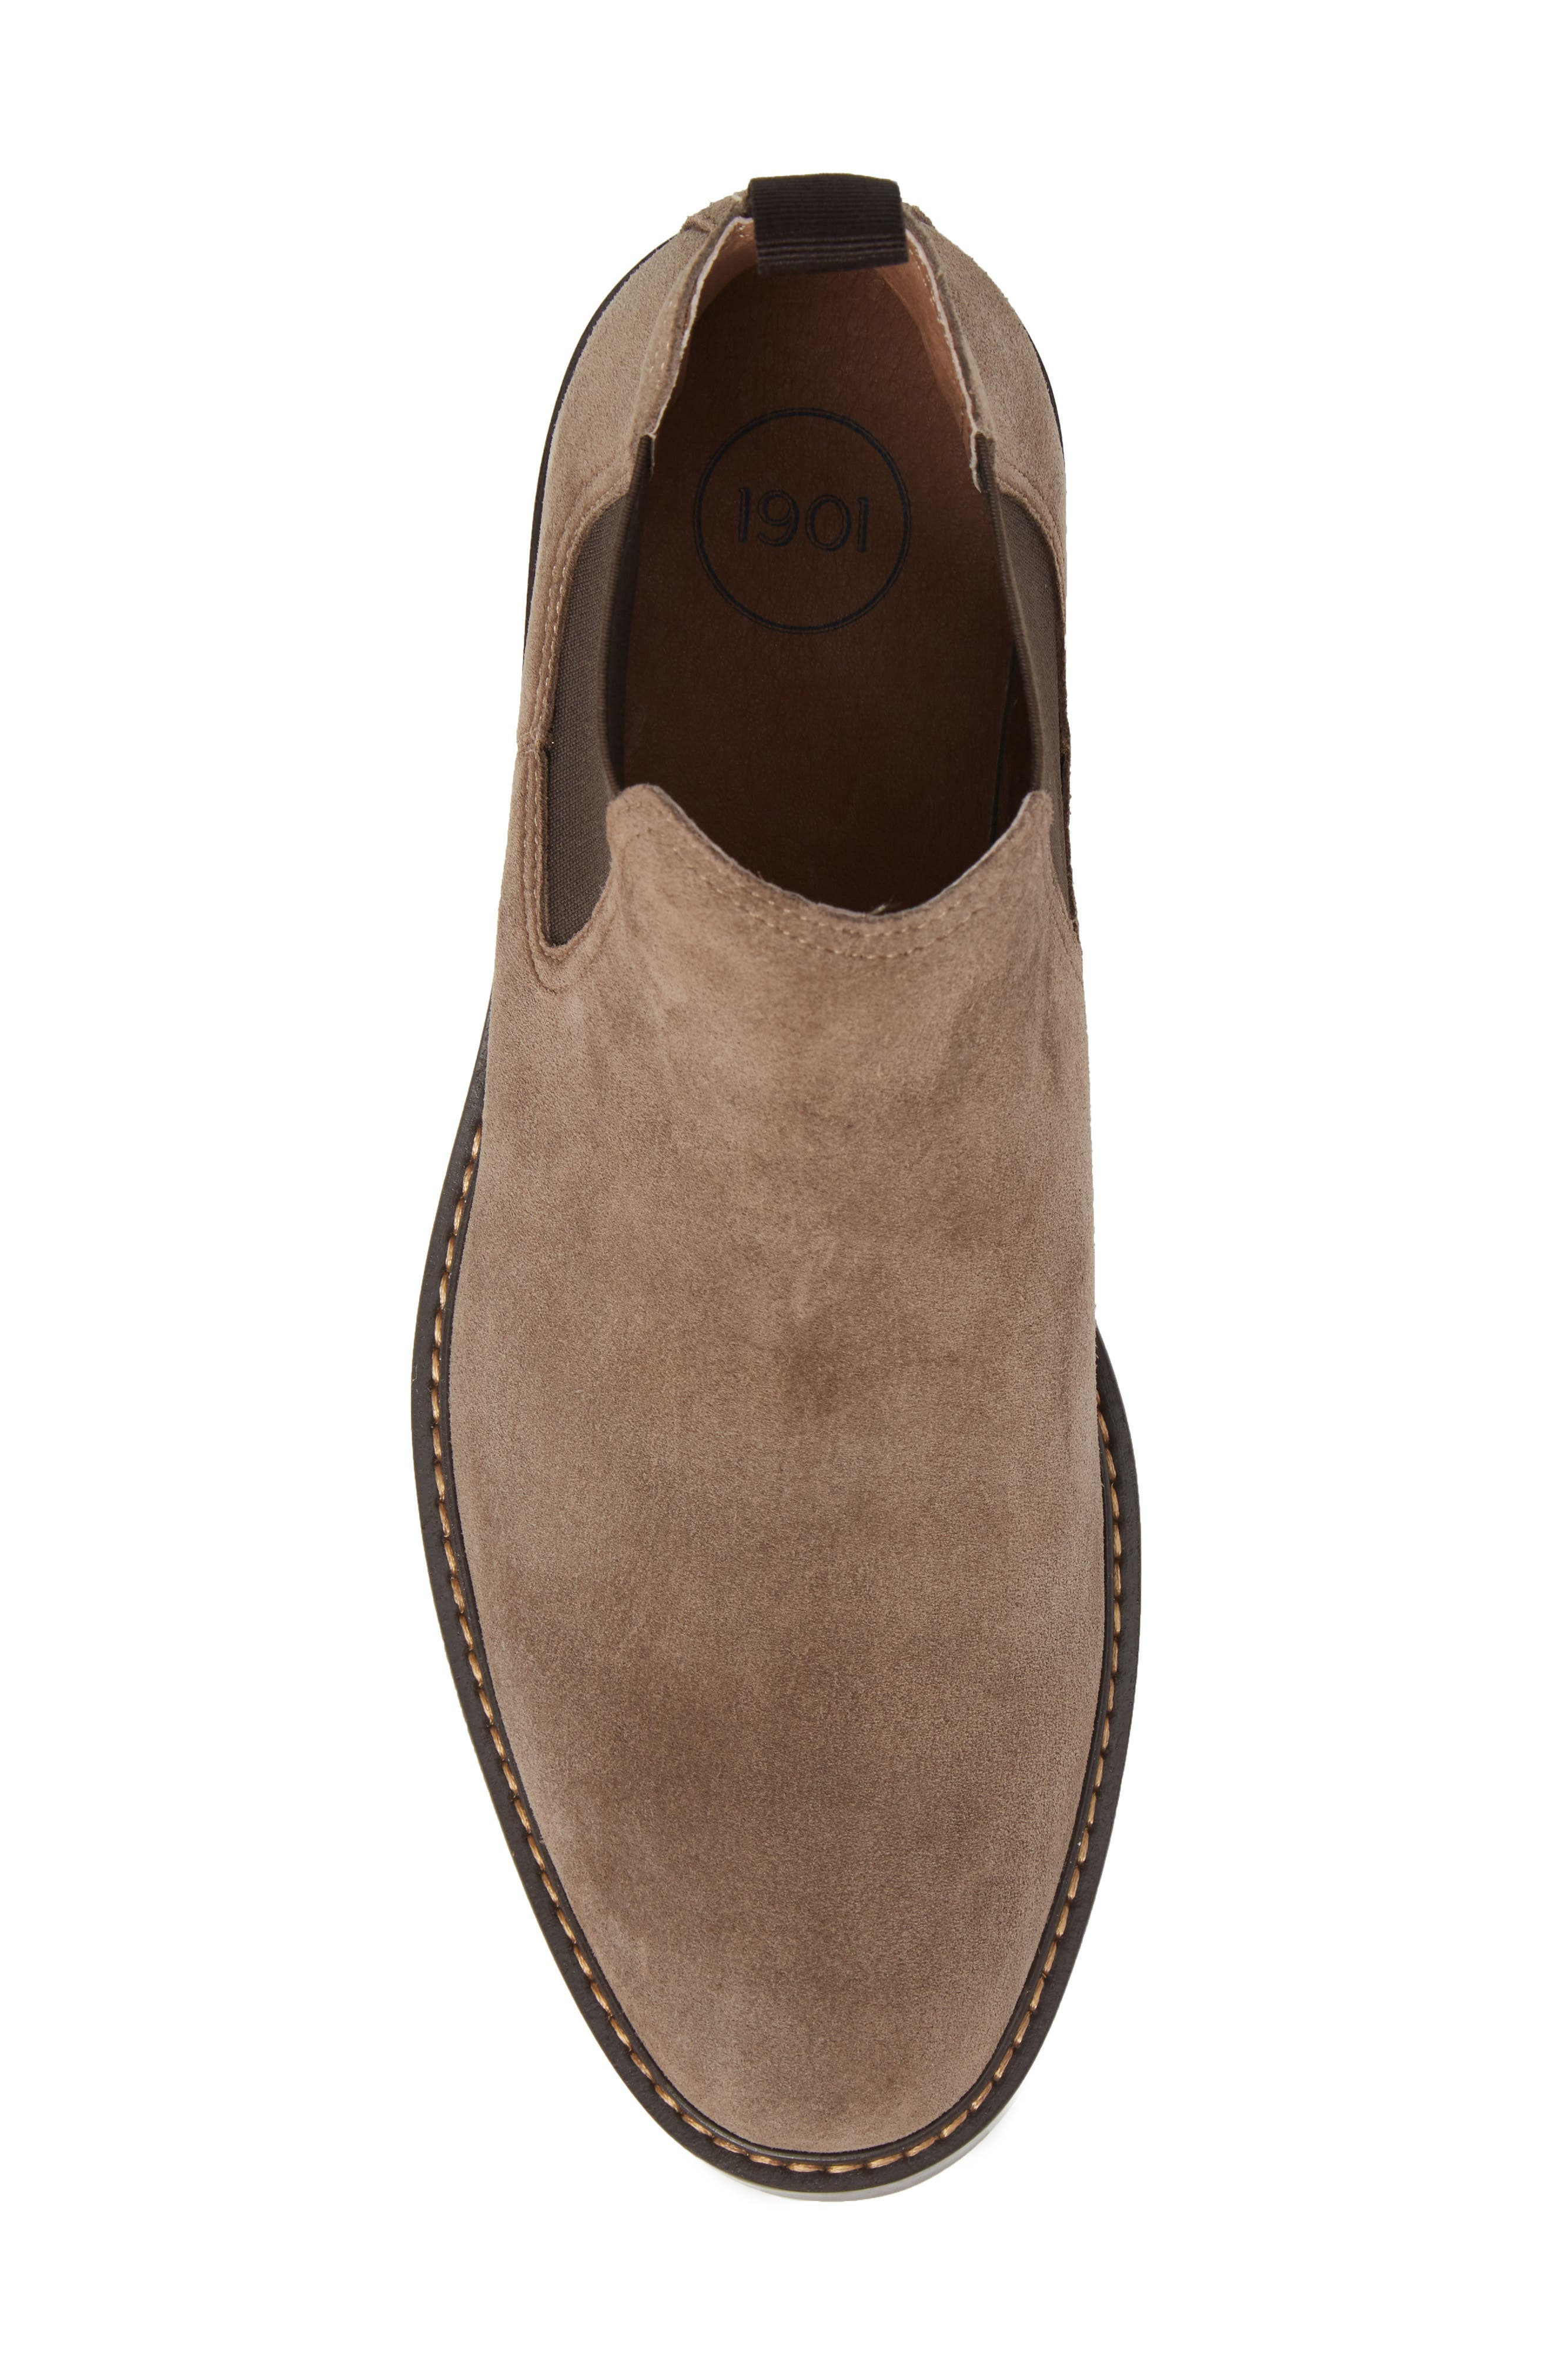 Brooks Chelsea Boot,                             Alternate thumbnail 5, color,                             TAUPE SUEDE